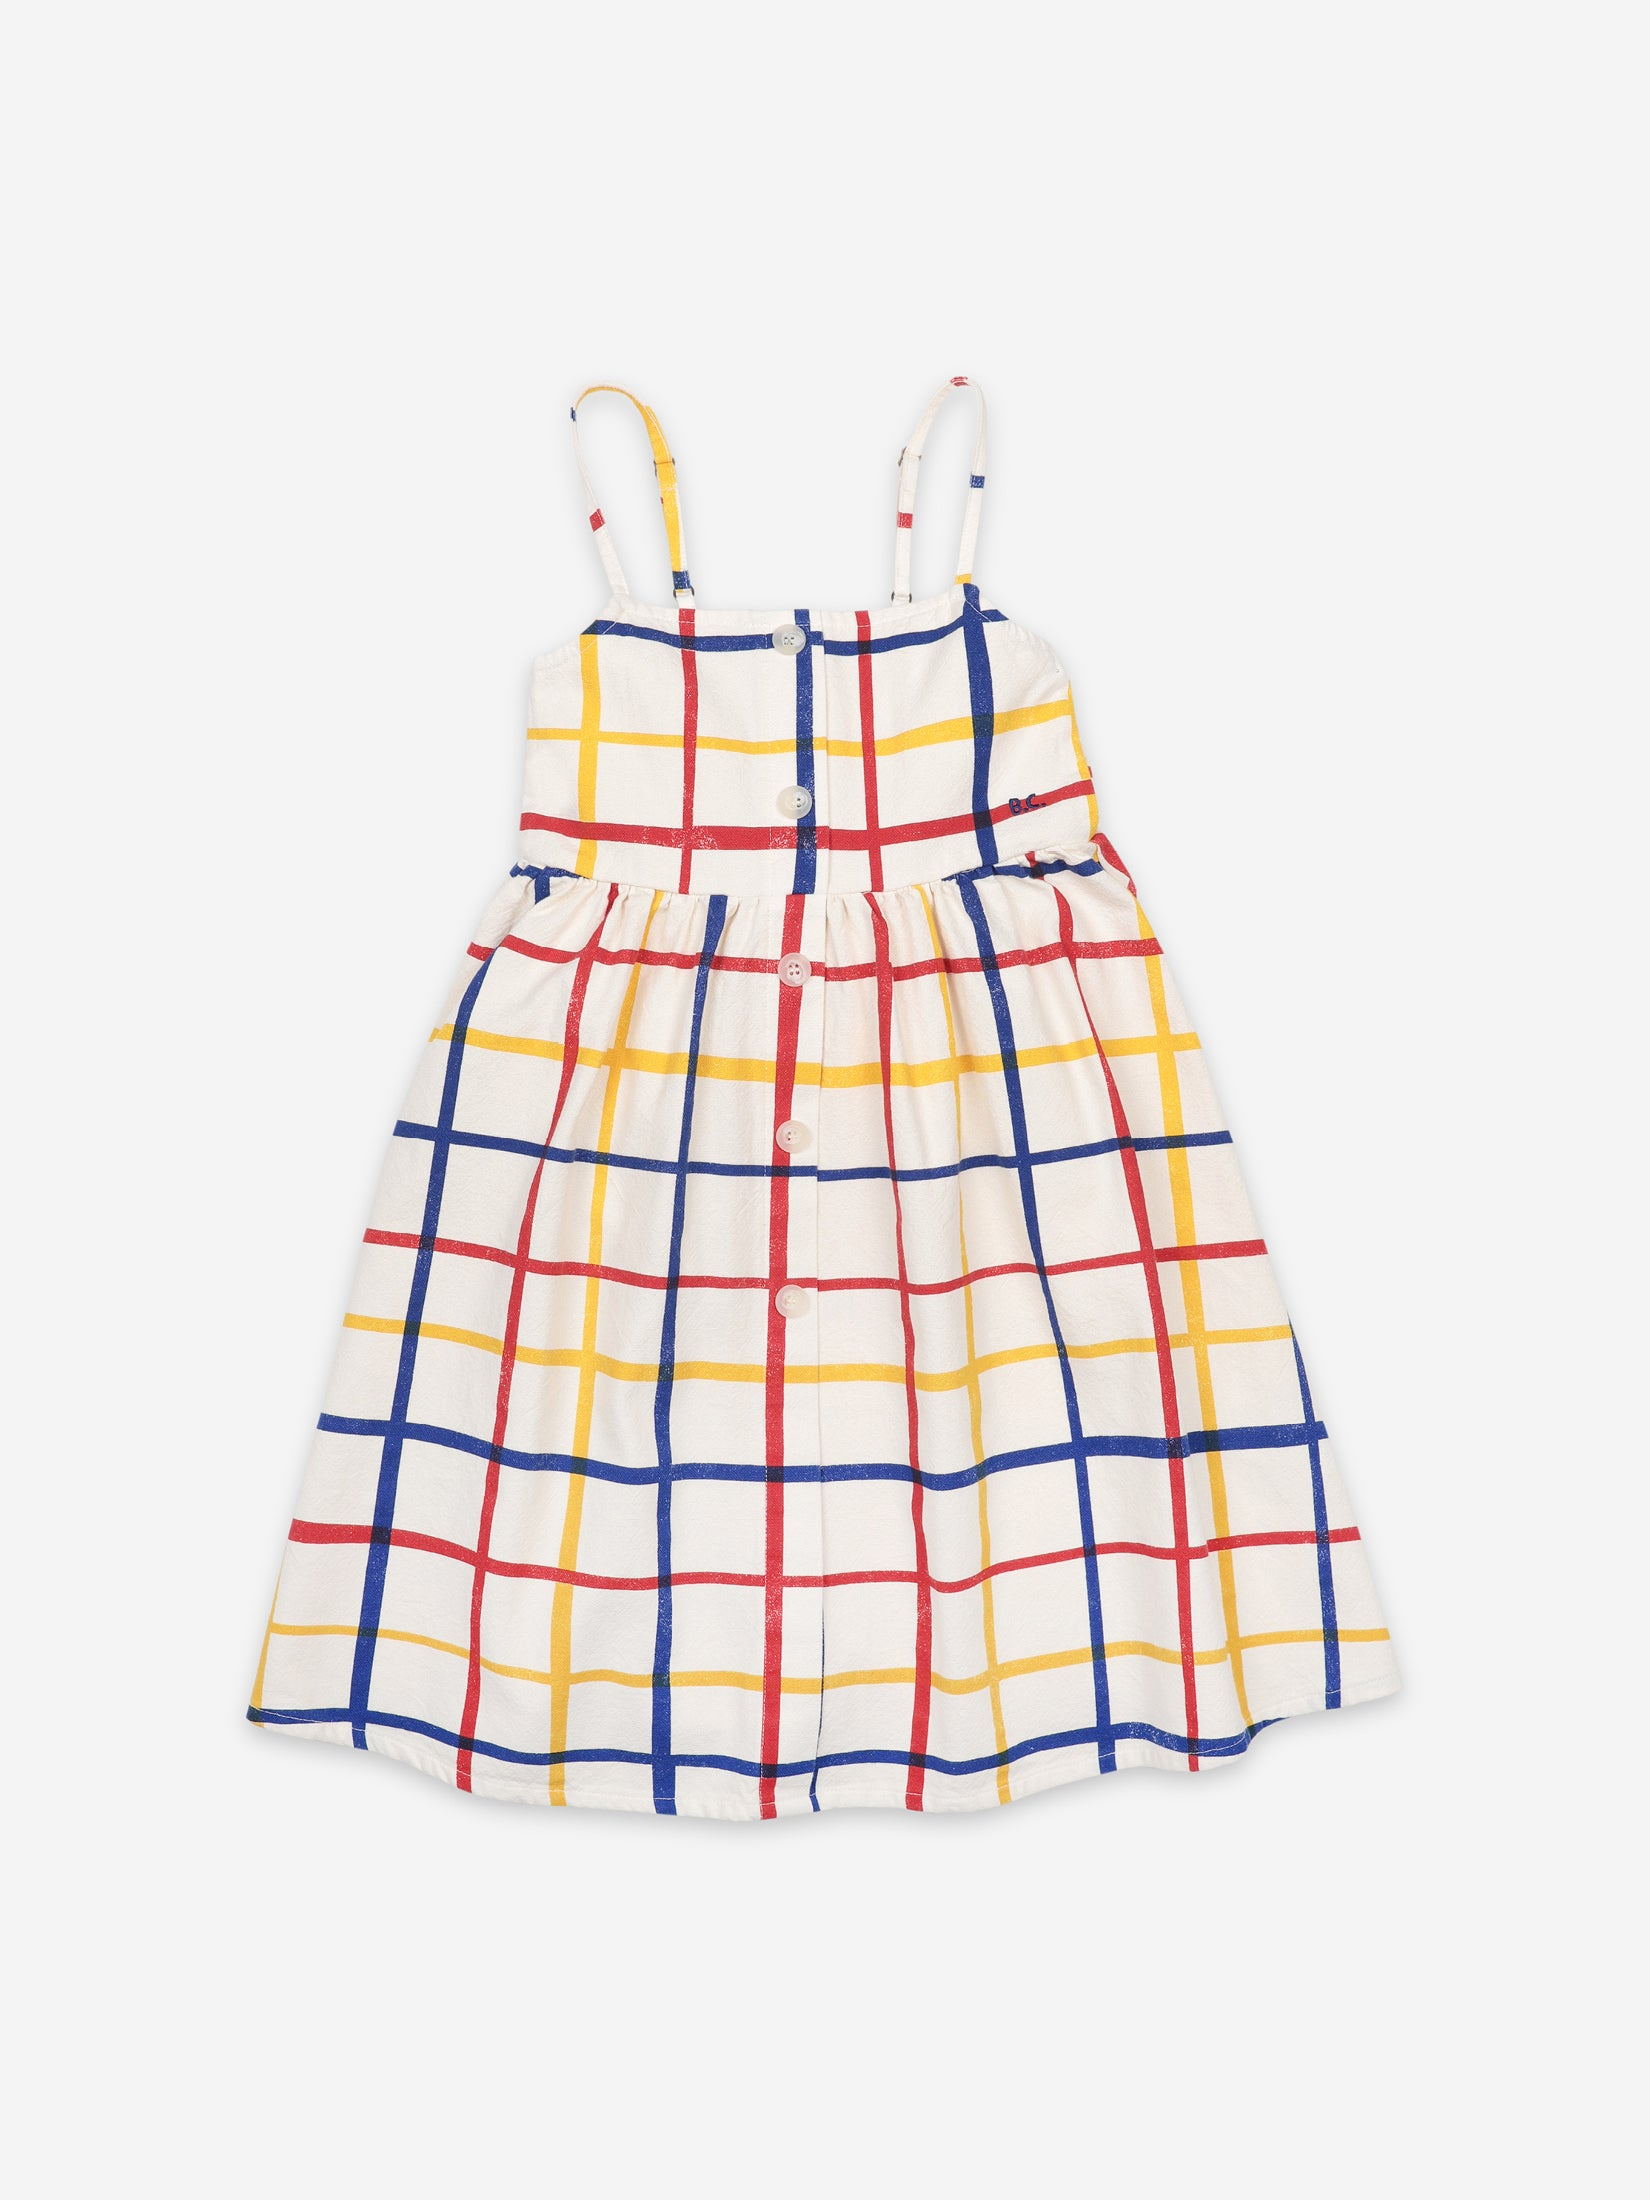 Bobo Choses Kids Multicolored Checkered Woven Dress | Sweet Threads